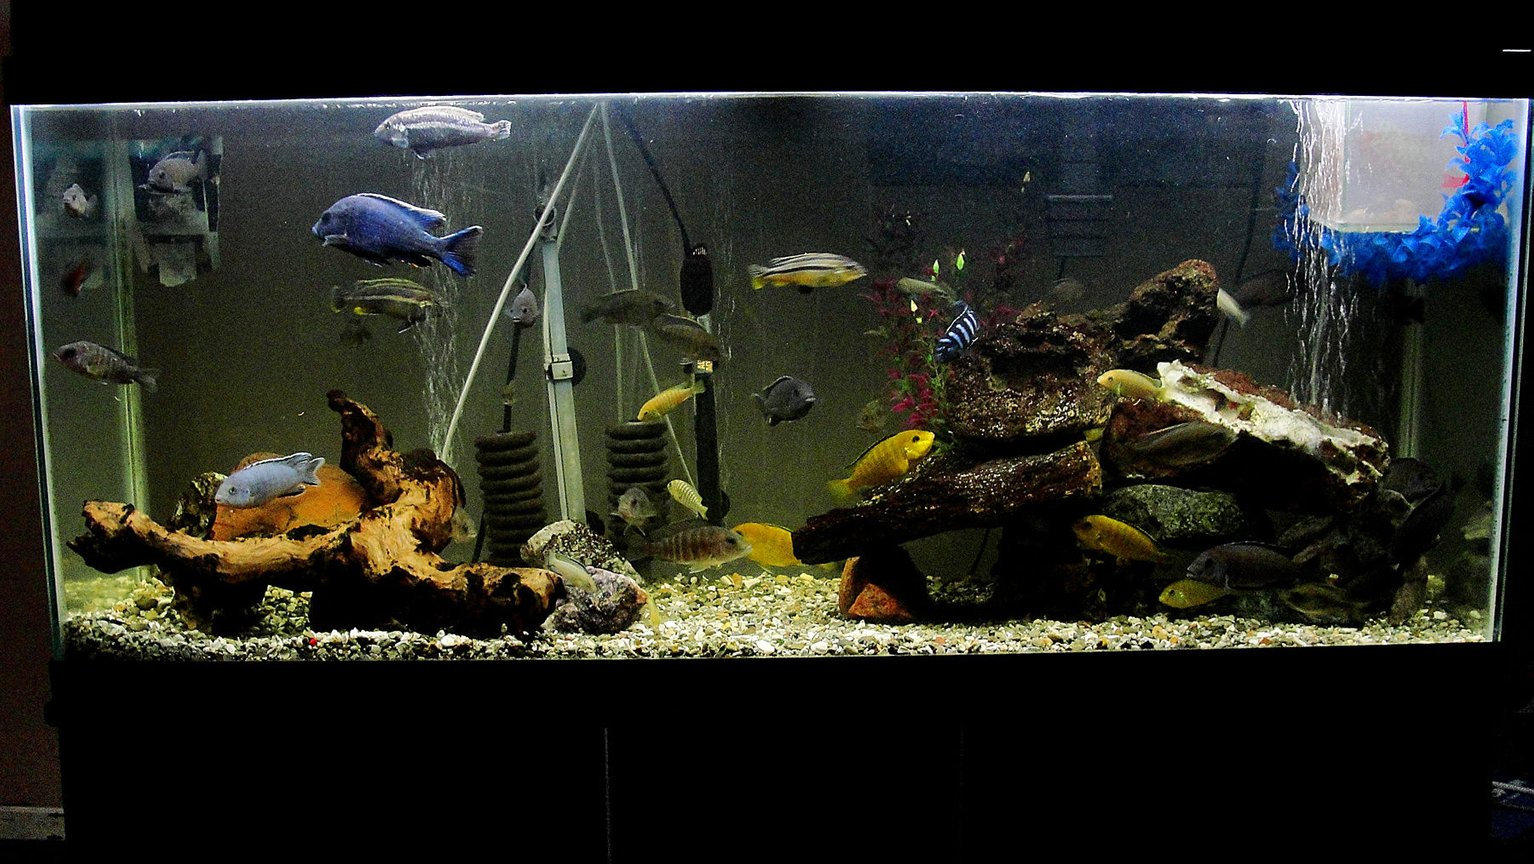 55 gallons freshwater fish tank (mostly fish and non-living decorations) - Note - cool feature in the mid-section of the tank, the cichlids are in a circle formation. 55 Gallon Cichlid Tank, w/ Breeder Net. I have a great picture of a pair spawning